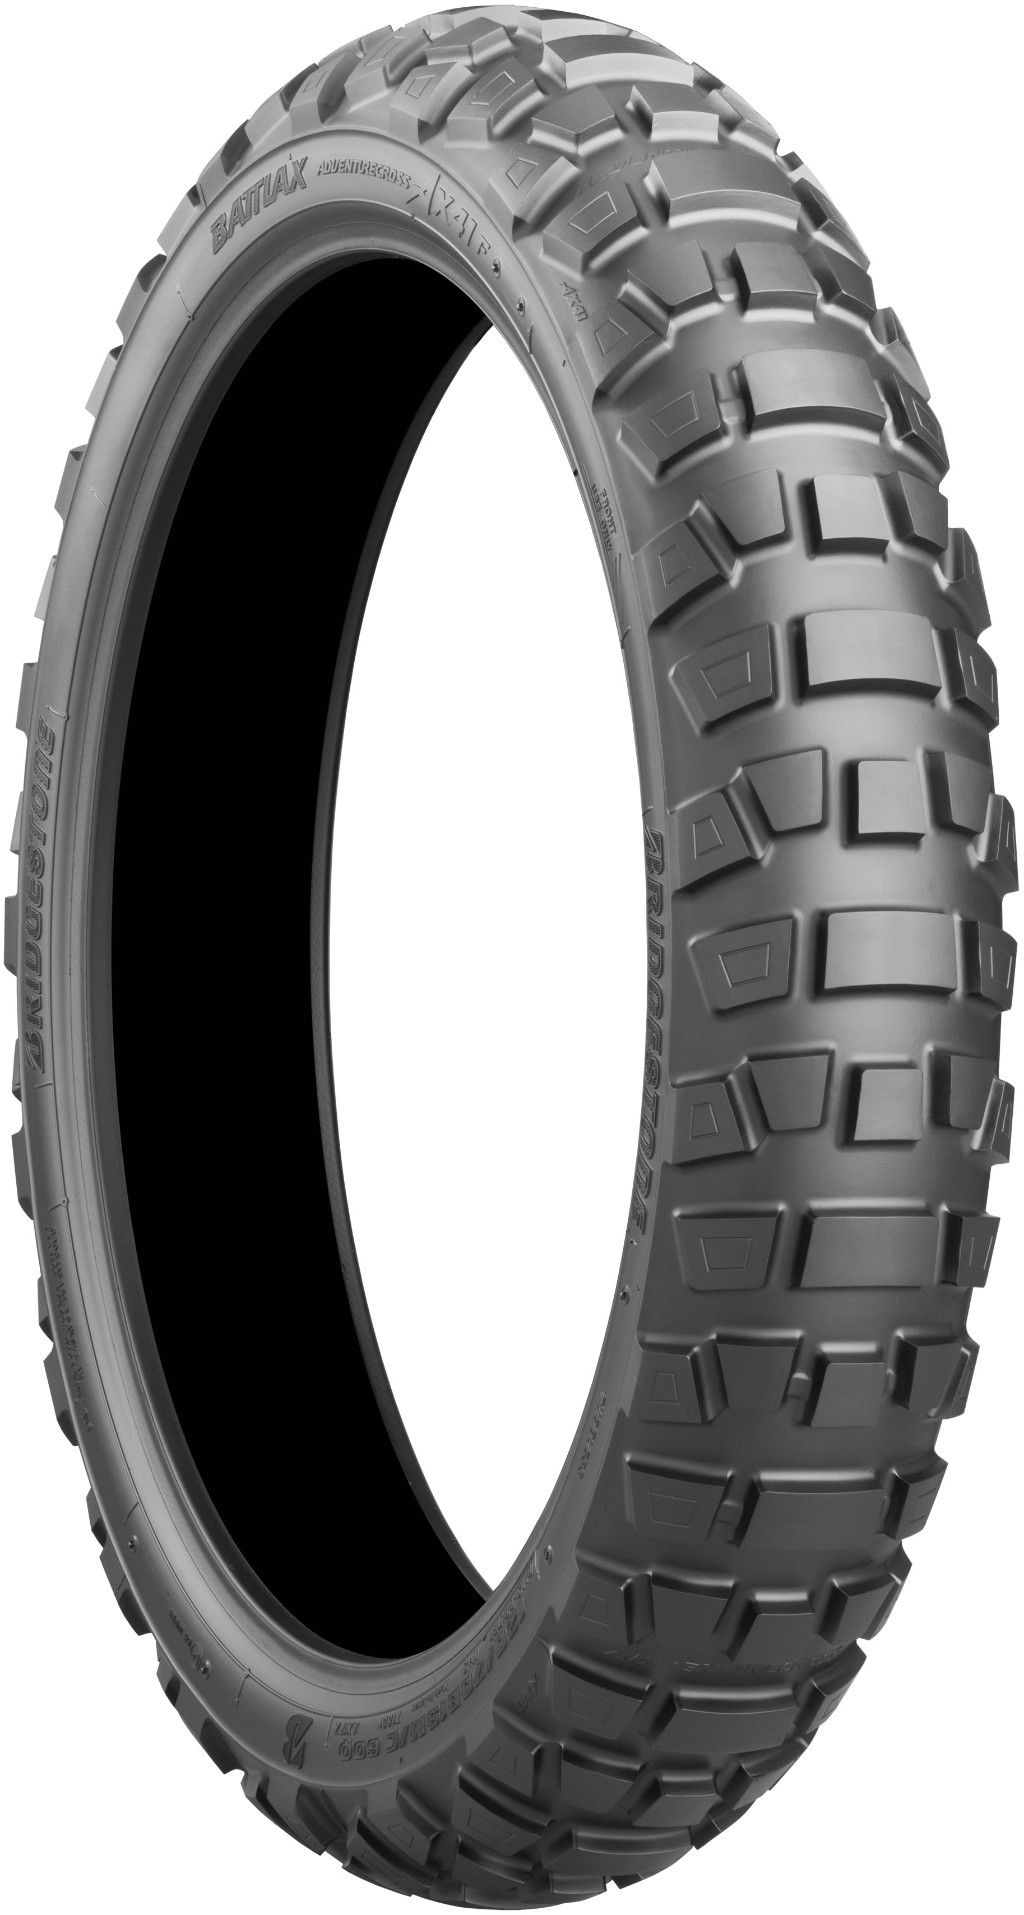 BRIDGESTONE BATTLAX ADVENTURECROSS AX41 [120/70B 19M/C 60Q] Tire